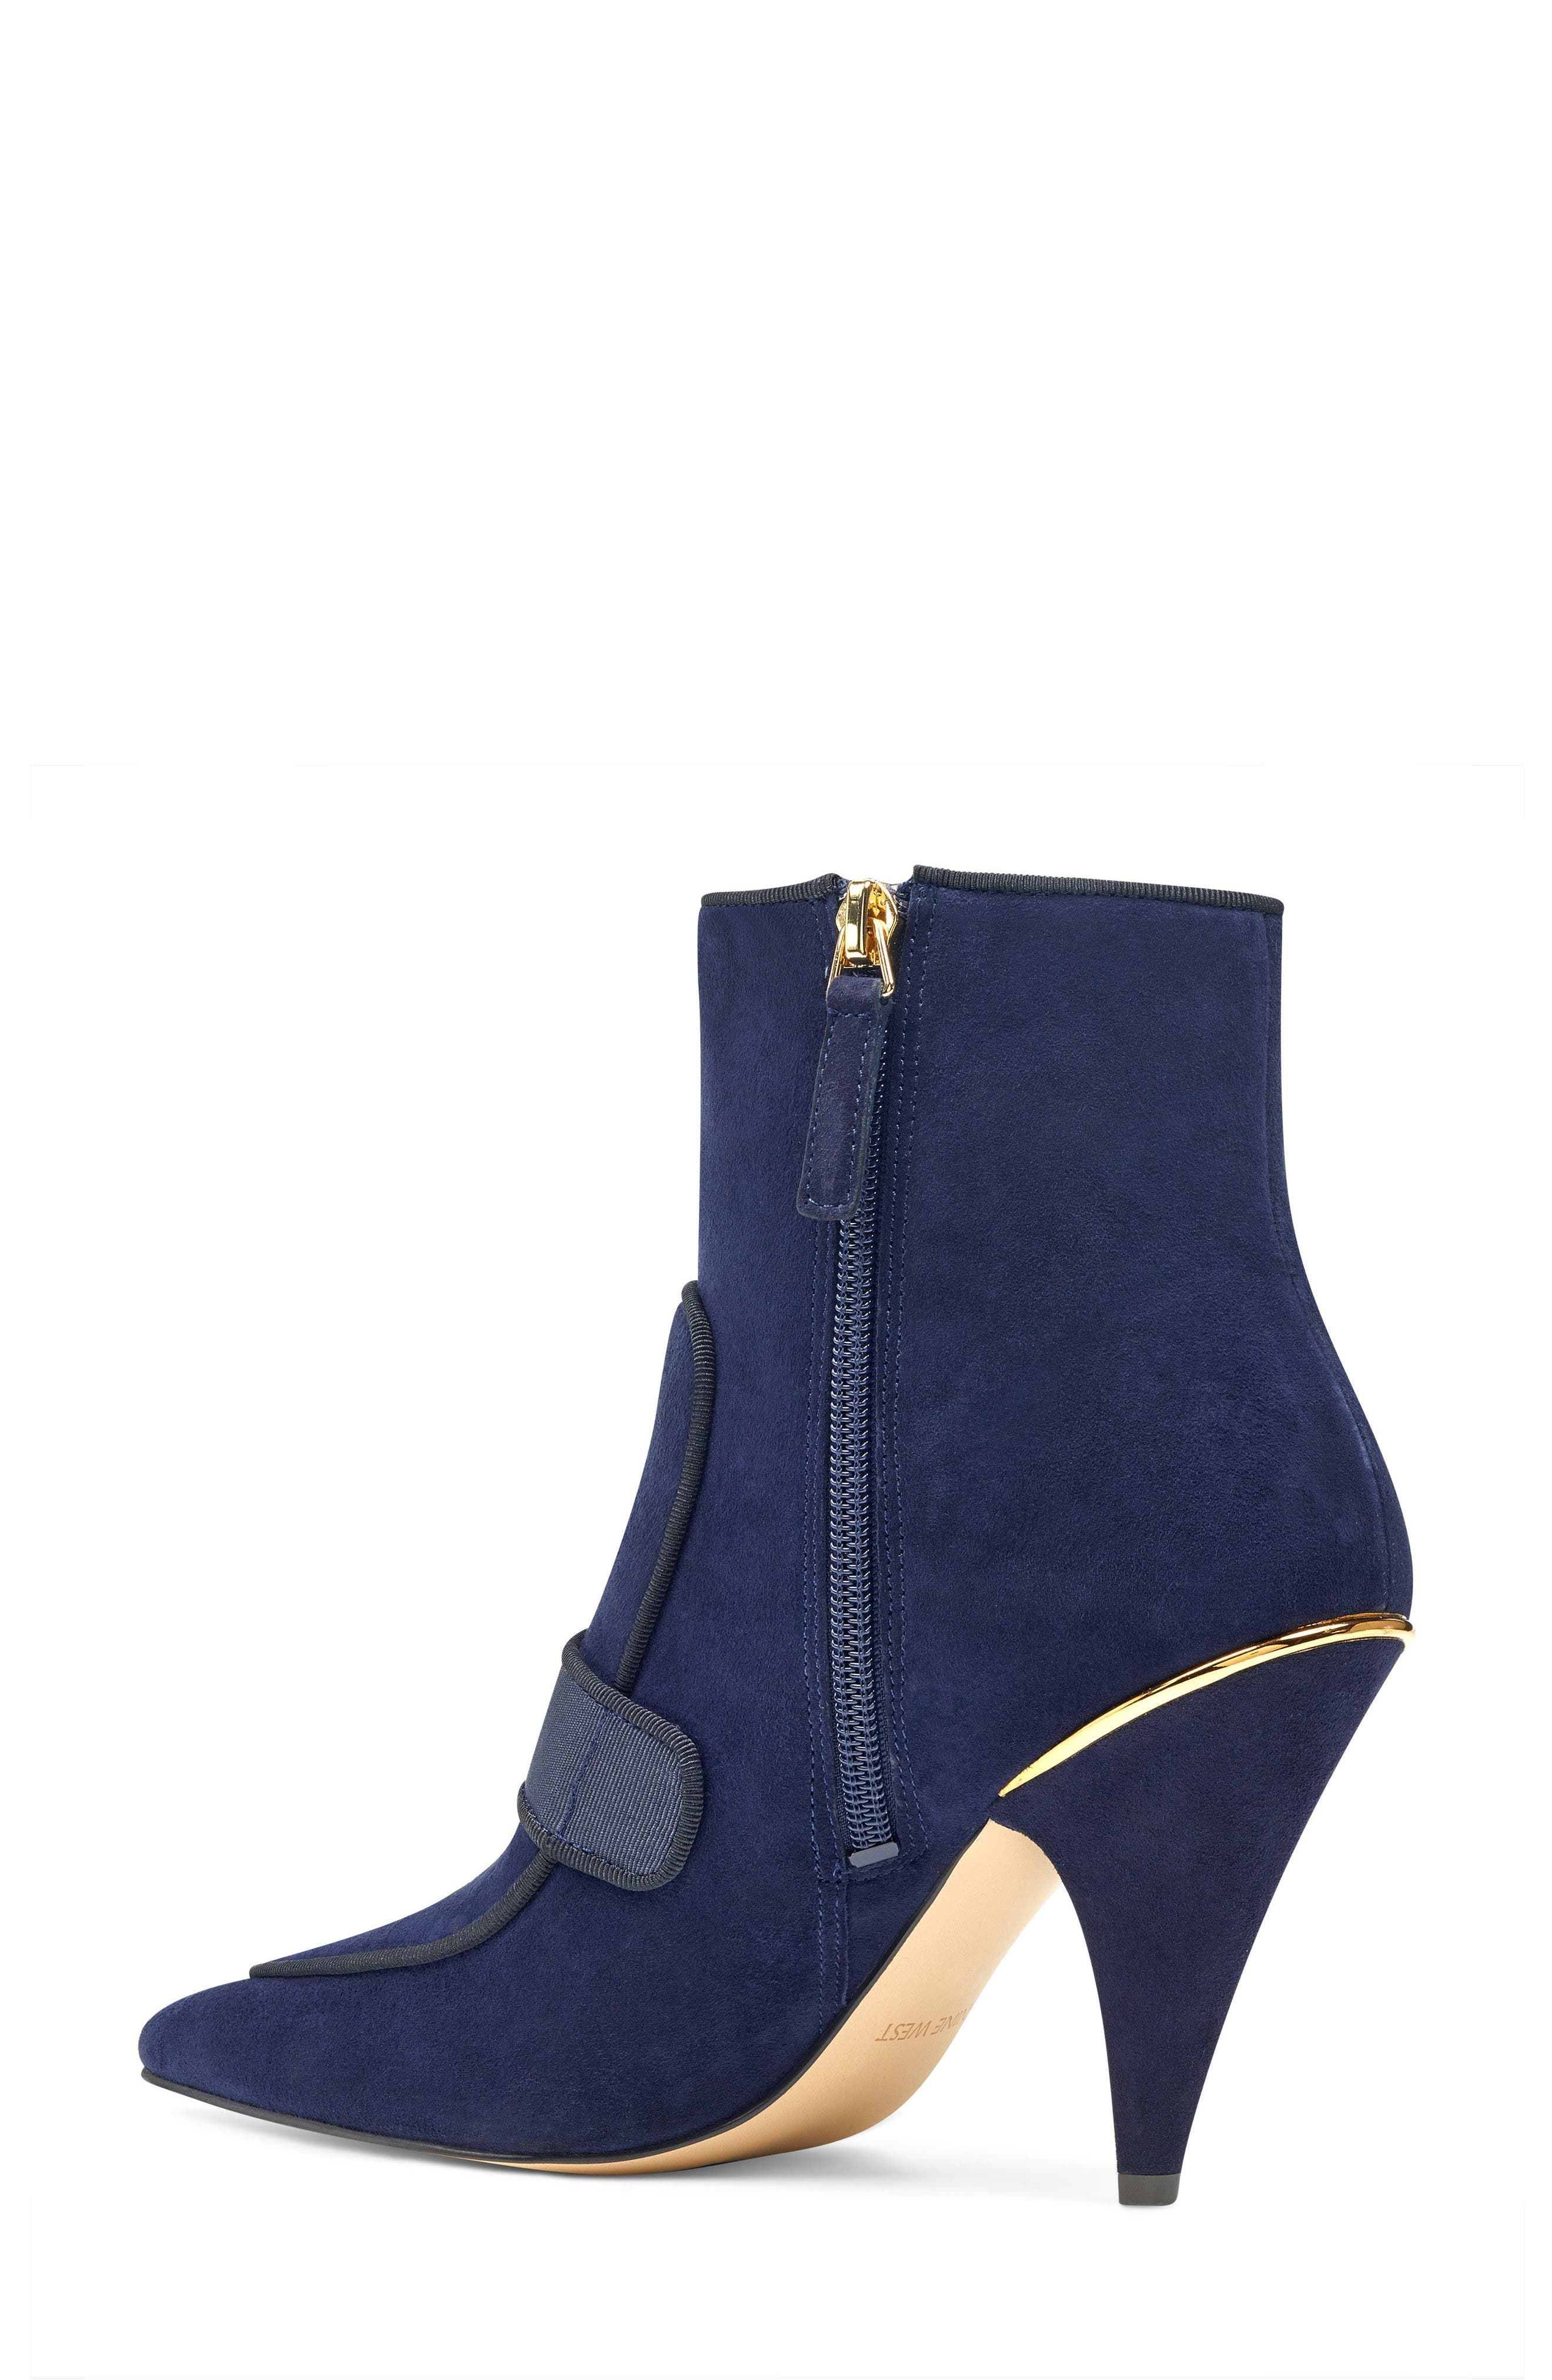 Westham Pointy Toe Bootie,                             Alternate thumbnail 2, color,                             Navy/ Black Suede